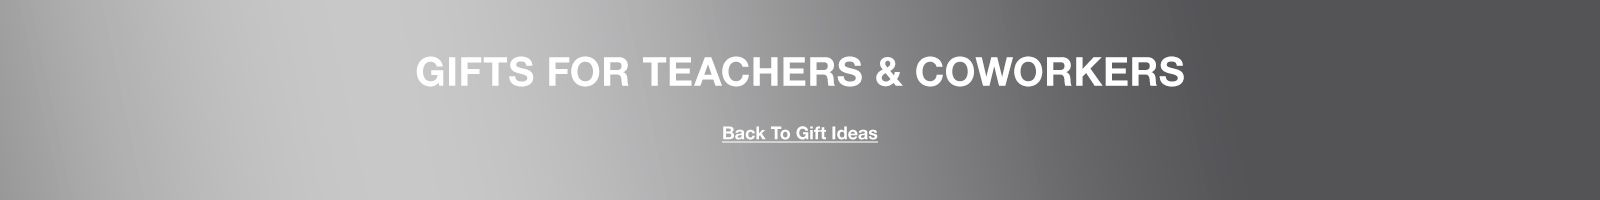 Gifts For Teachers and Coworkers, Back to Gift Ideas